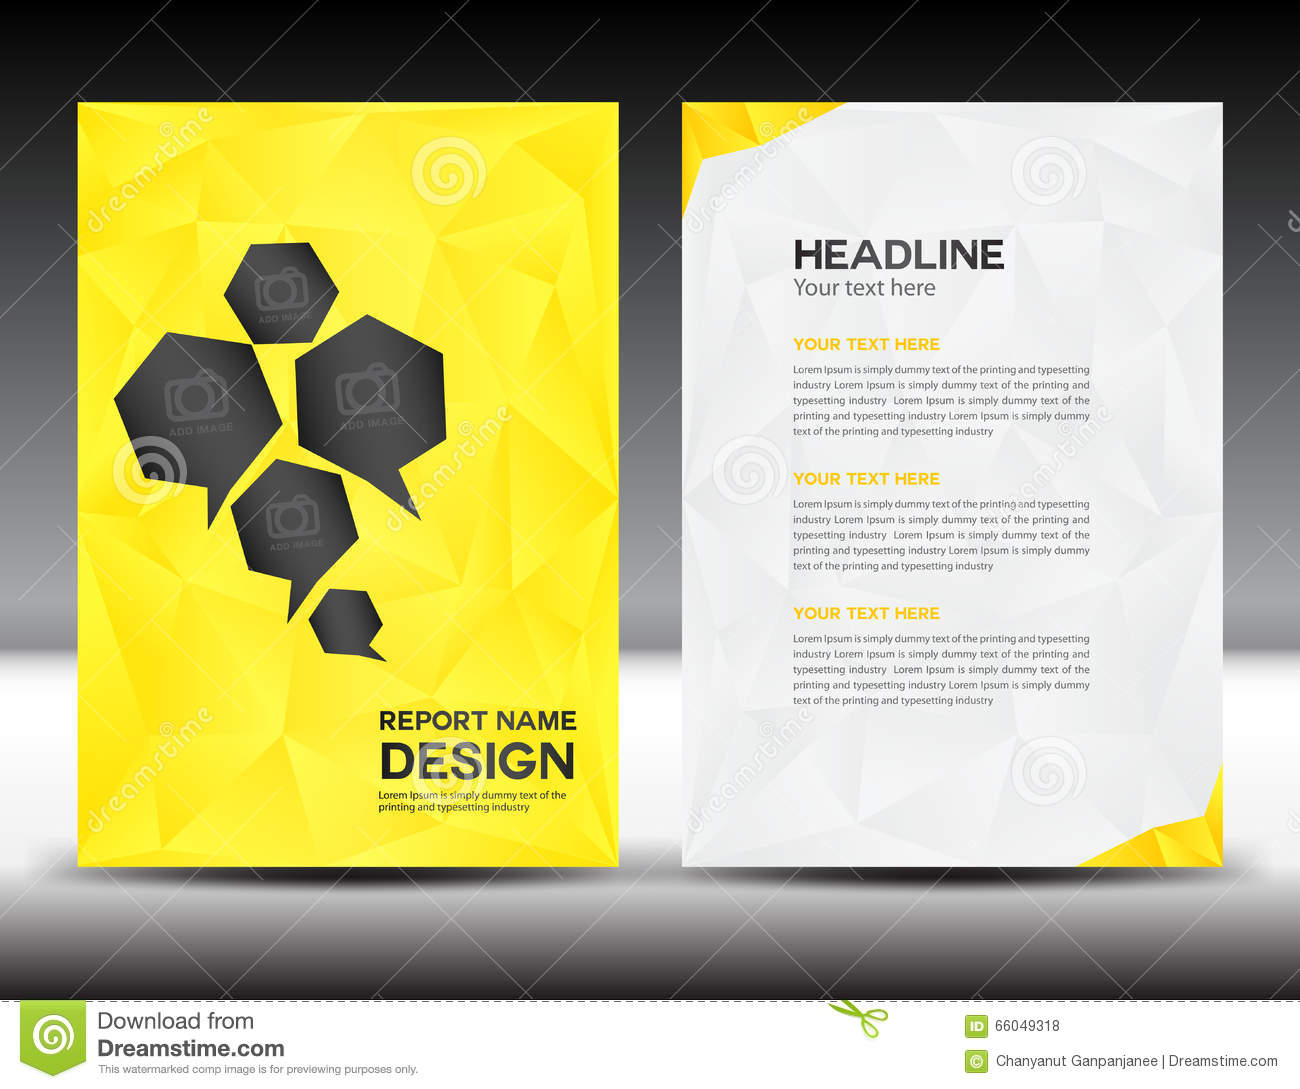 teacher resume brochure example sample resumes sample cover teacher resume brochure example templates for microsoft office suite office templates yellow cover annual report